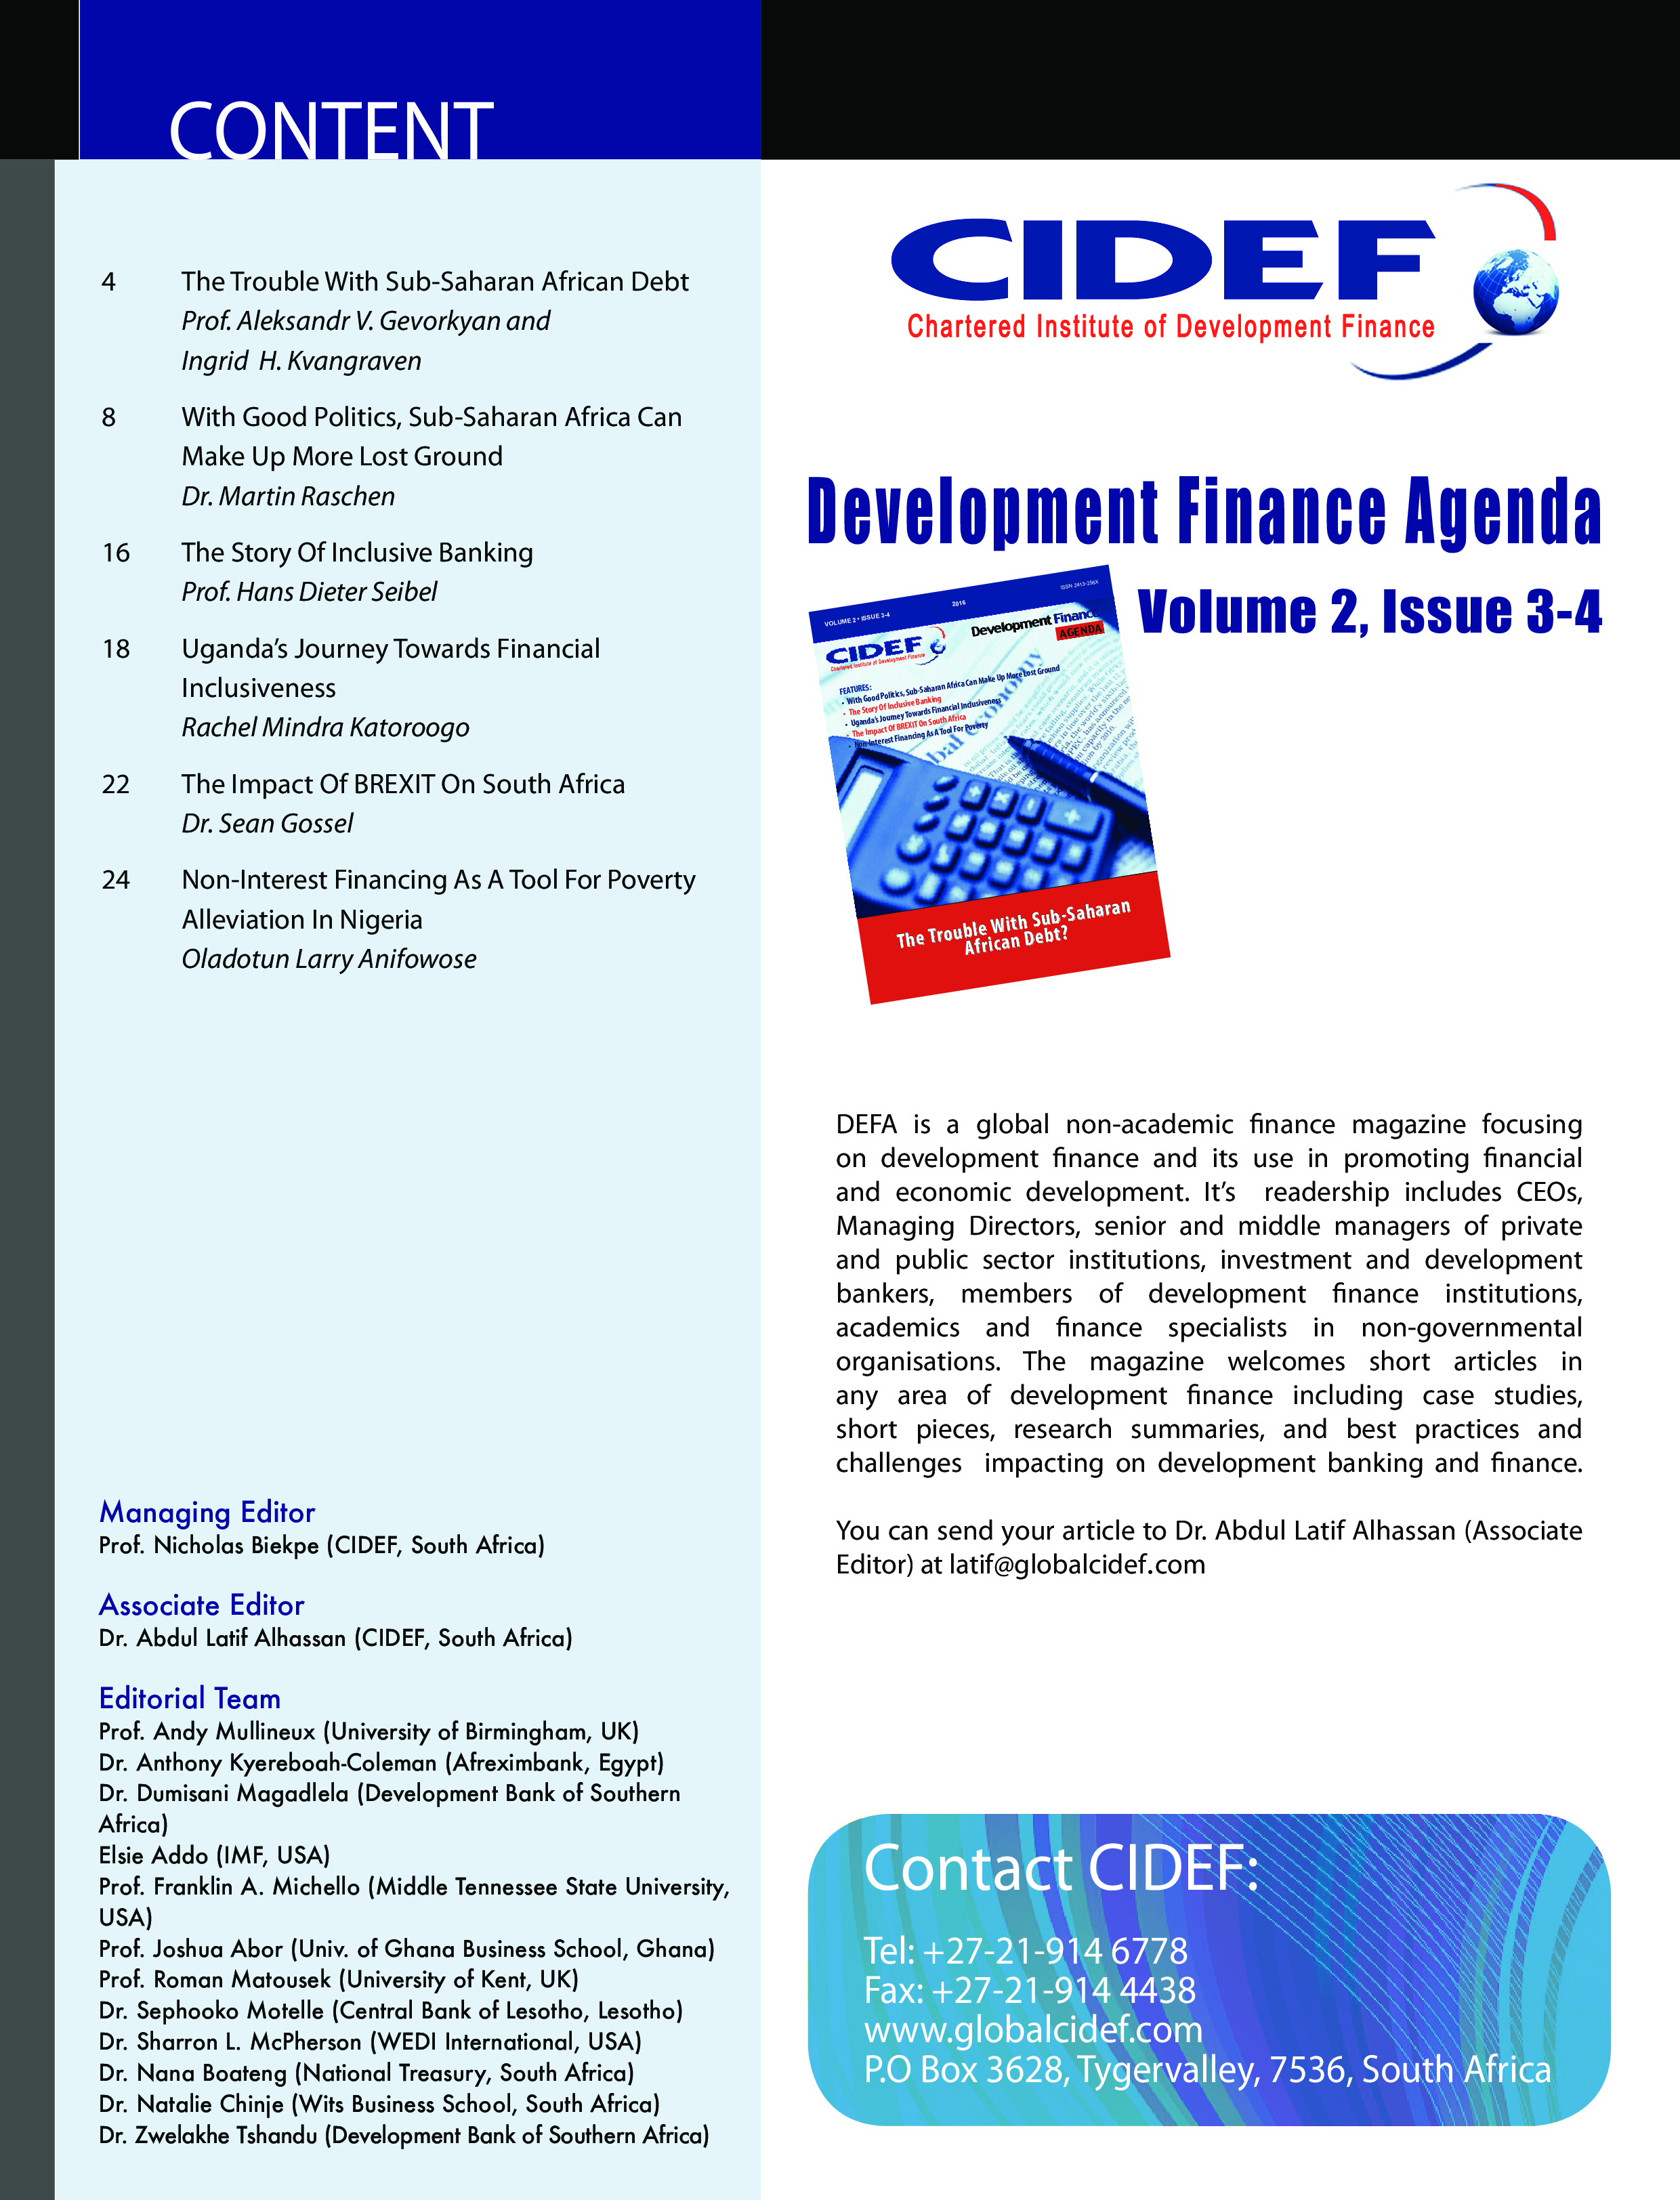 Development Finance Agenda main image